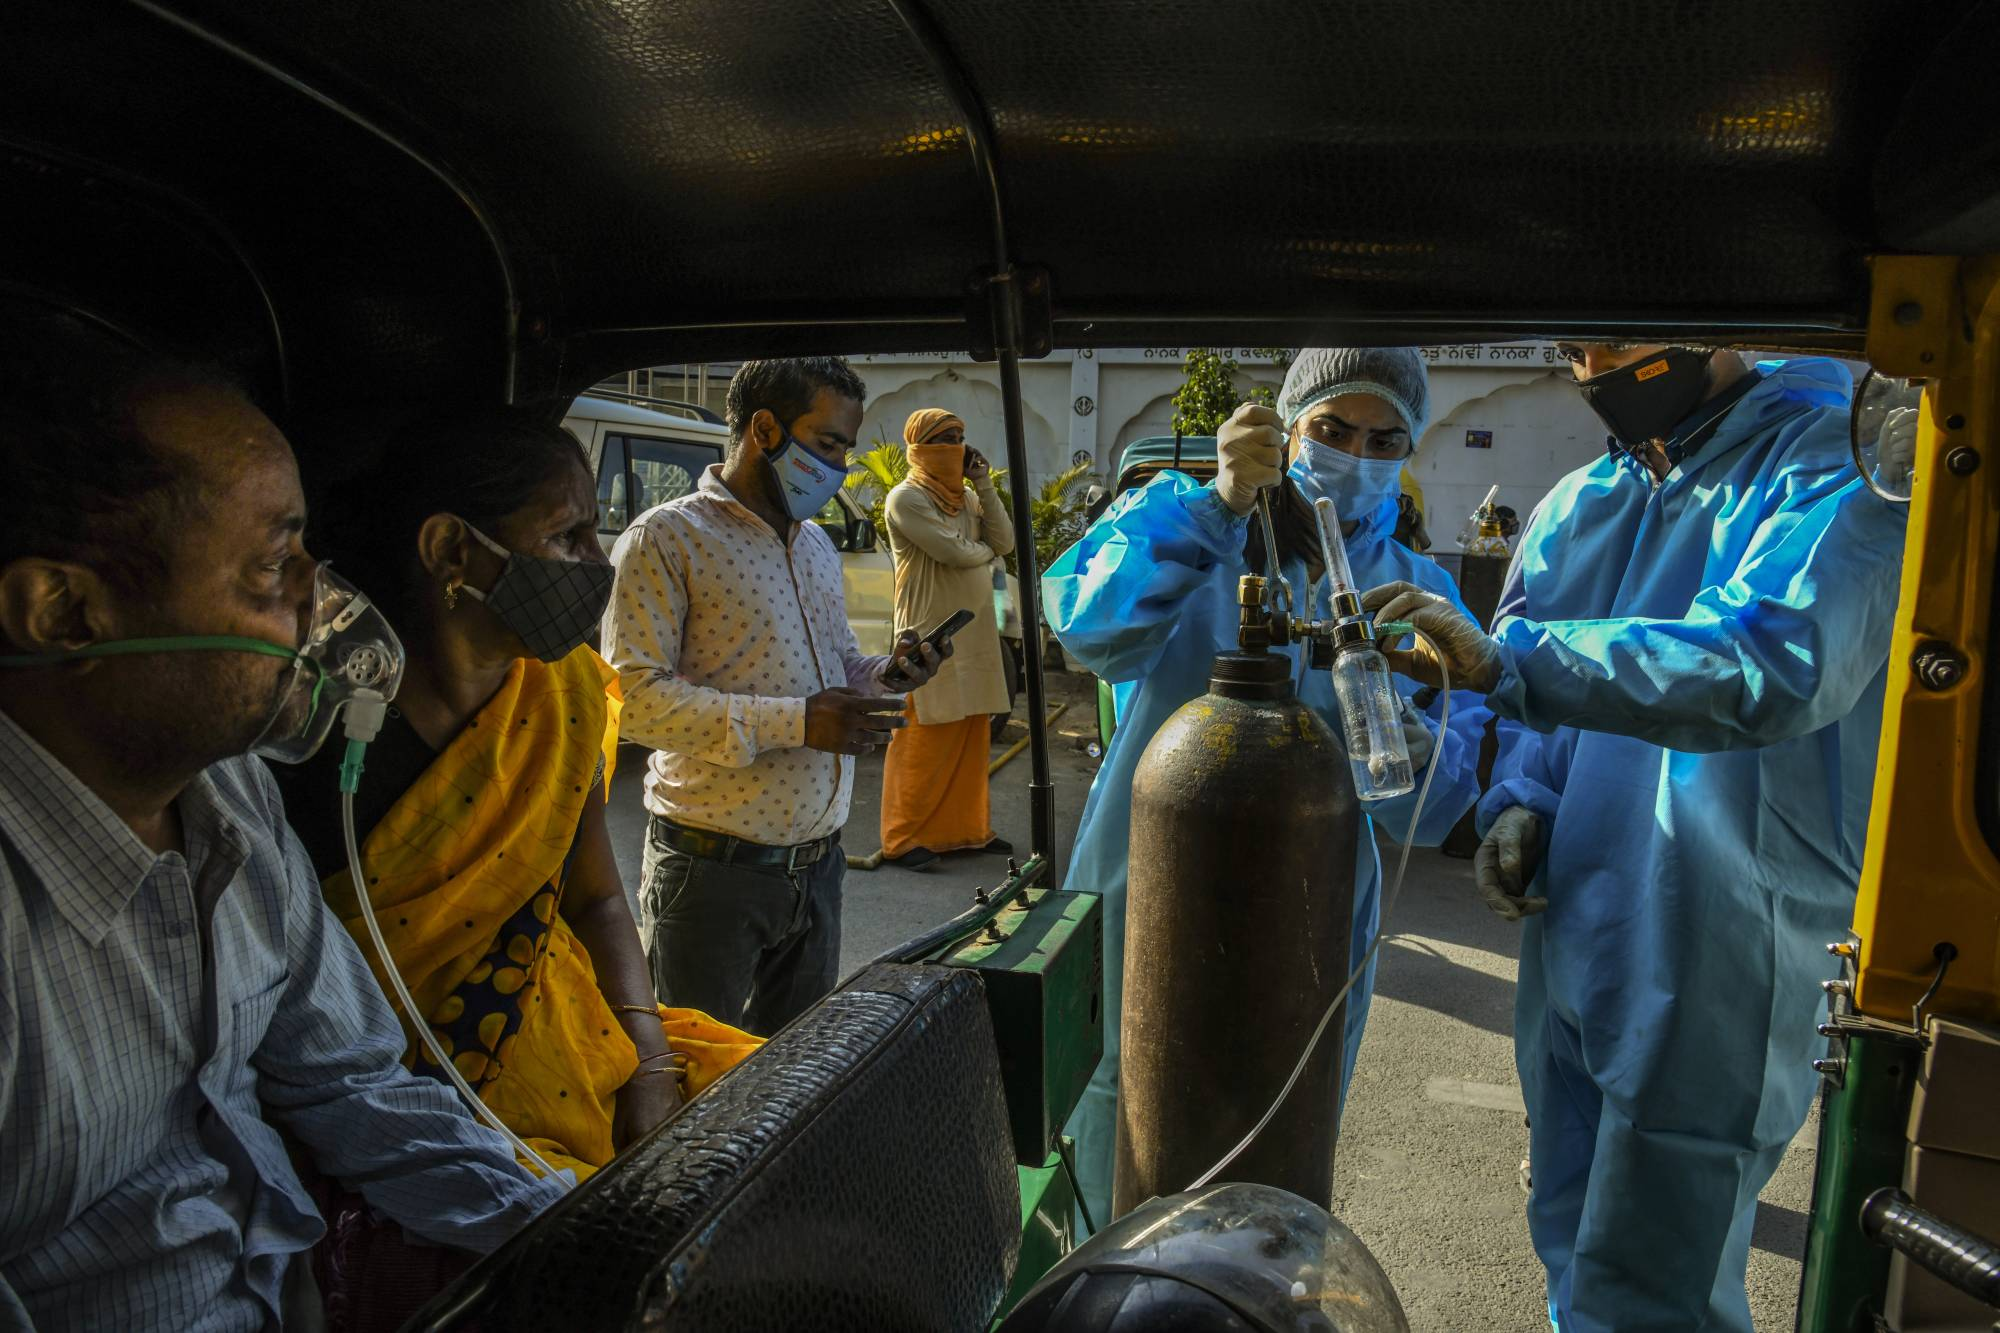 Coronavirus patients sitting in a rickshaw receive oxygen outside a Sikh house of worship in New Delhi on Sunday.  | ATUL LOKE / THE NEW YORK TIMES